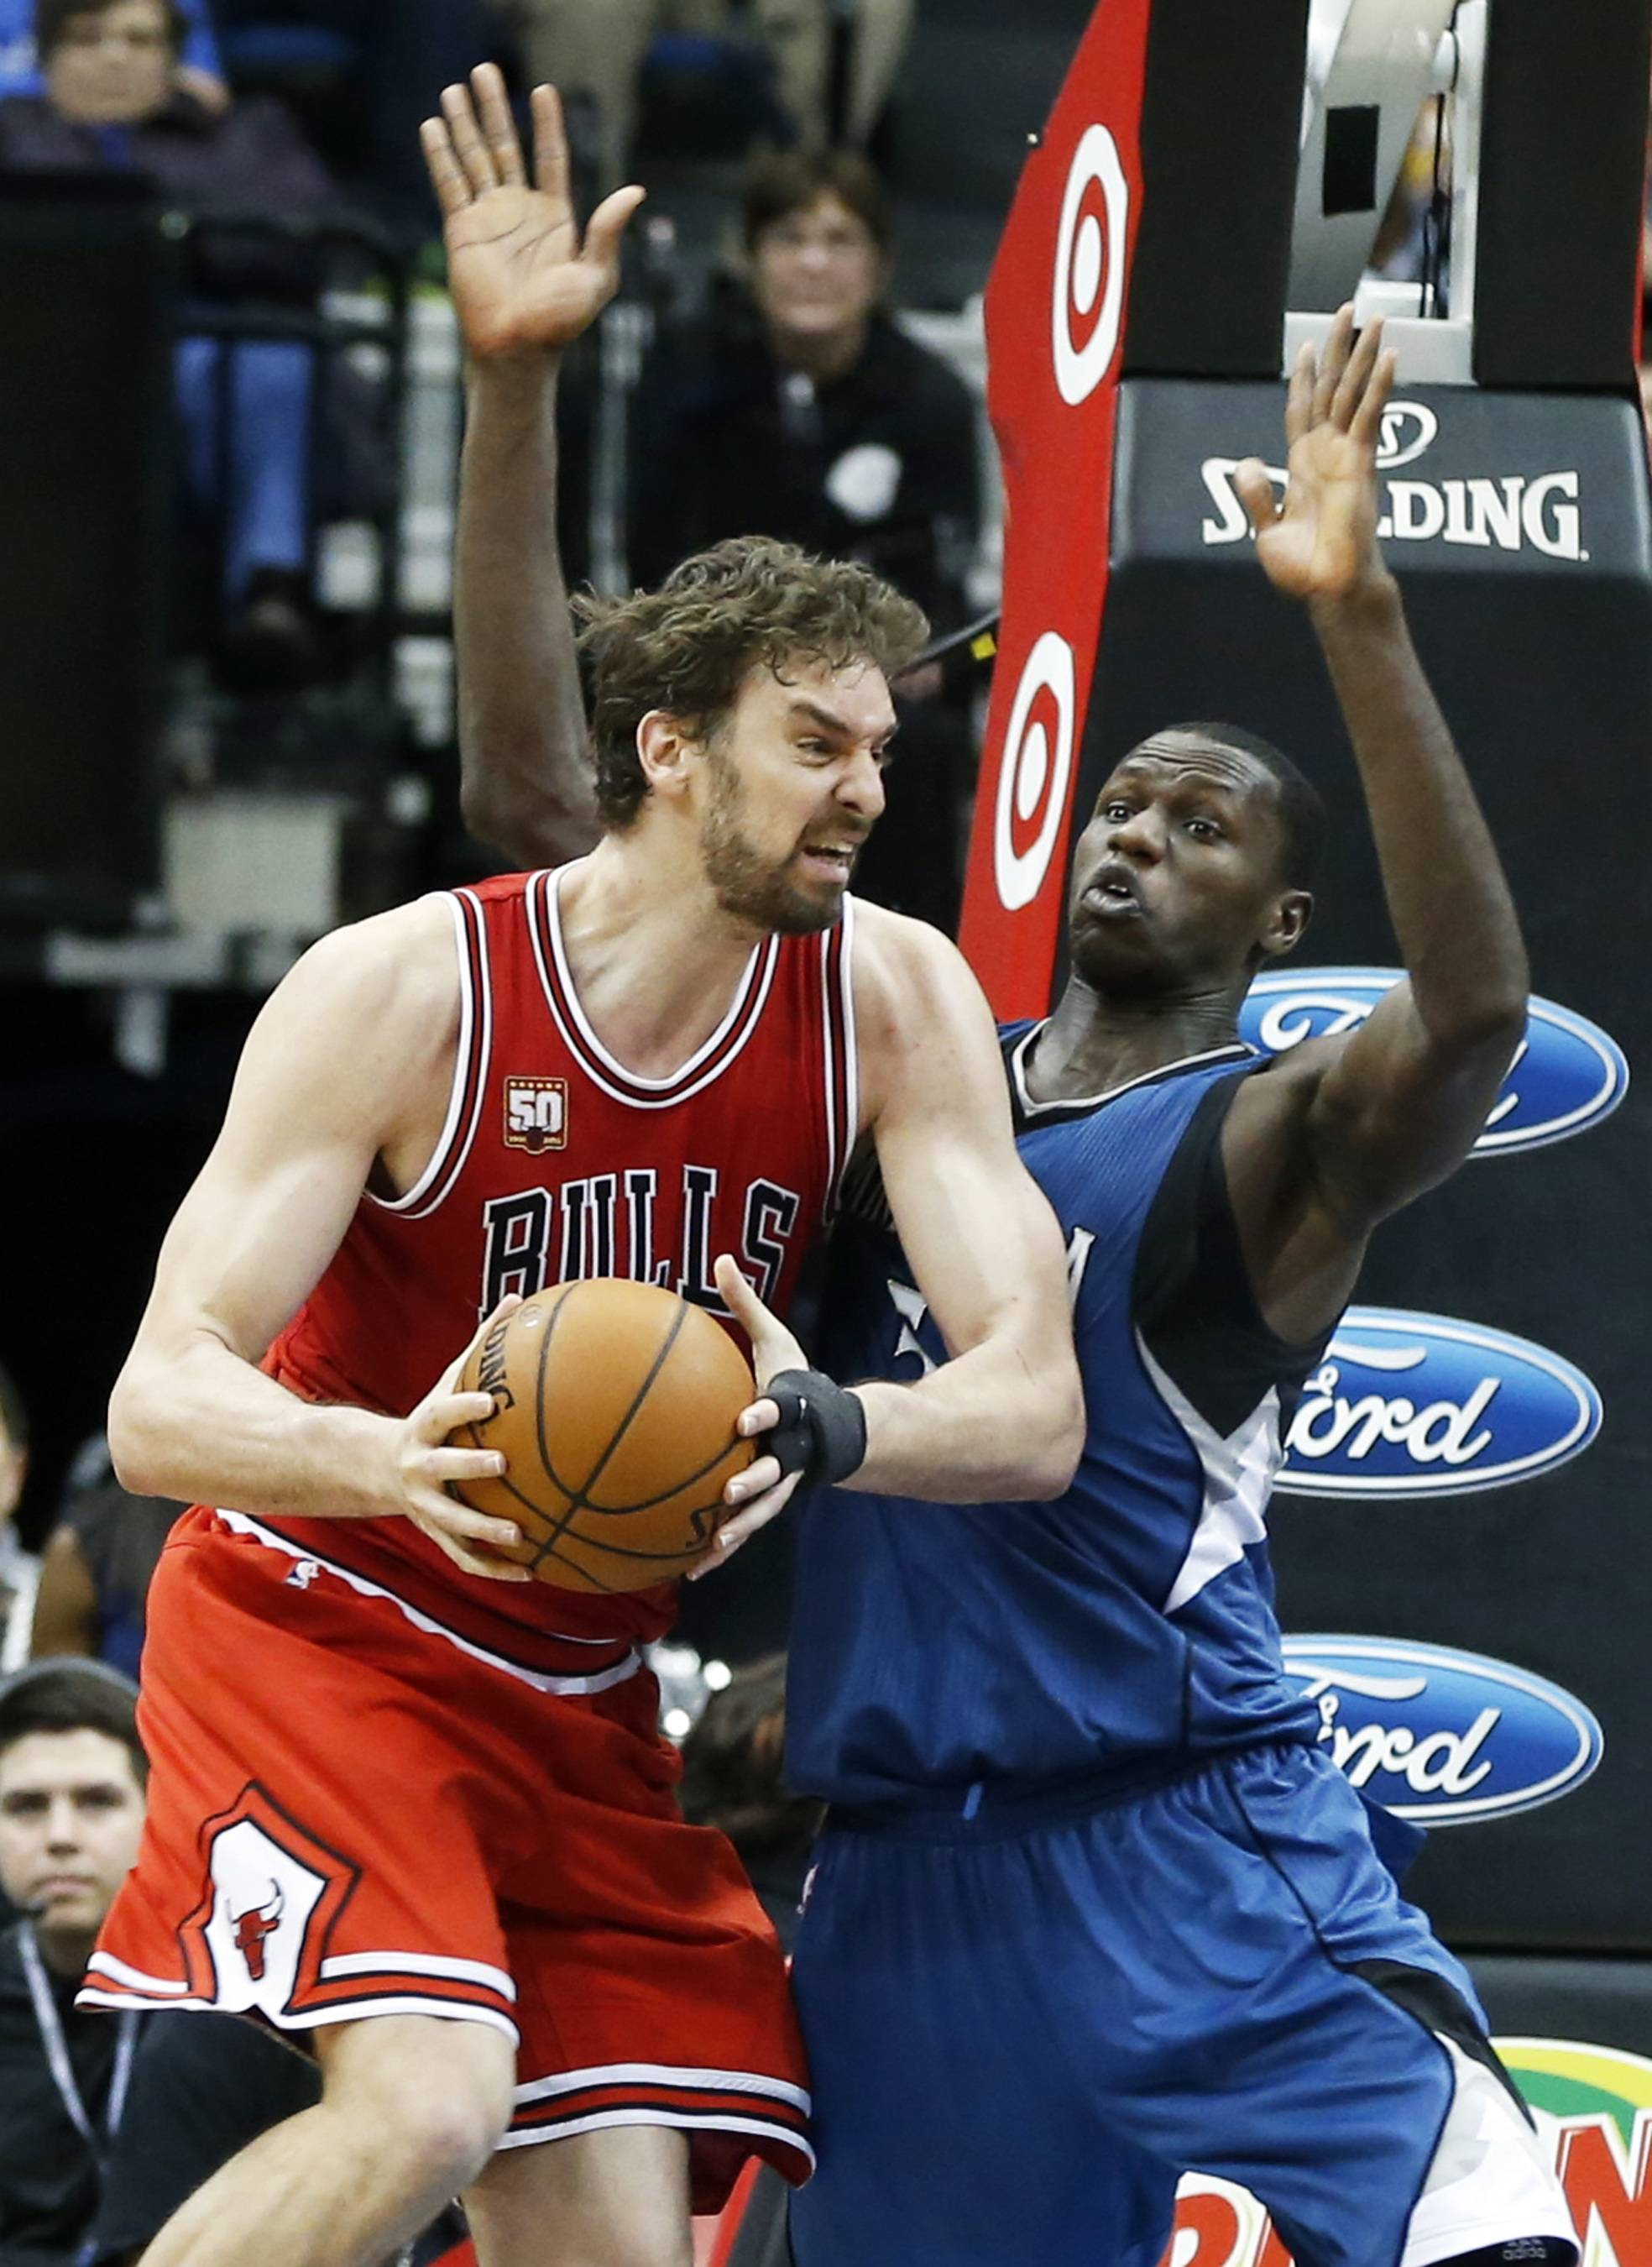 Chicago Bulls' Pau Gasol, left, of Spain, tries to work around Minnesota Timberwolves' Gorgui Dieng of Senegal in the second half of an NBA basketball game, Saturday, Feb. 6, 2016, in Minneapolis. The Timberwolves won 112-105. Gasol led the Bulls with 25 points while Dieng scored 24 for the Timberwolves. (AP Photo/Jim Mone)